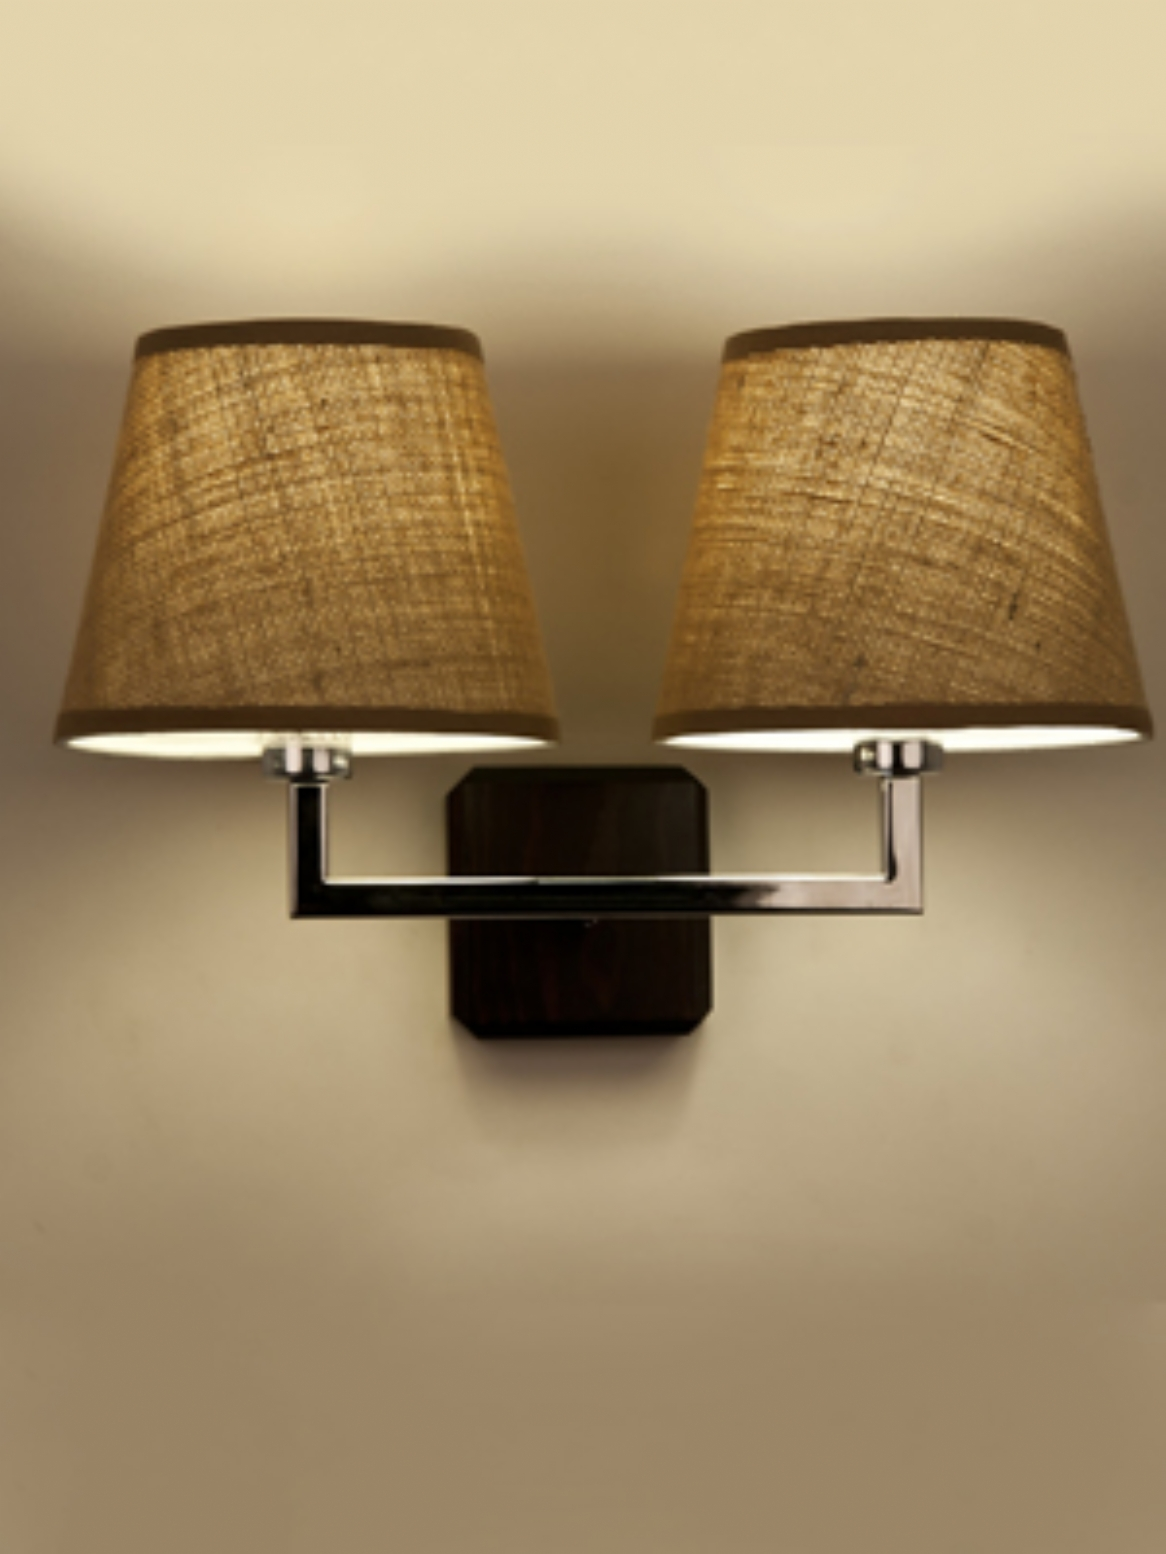 Wall Lamp With Shades : Fabric wall light shades - upgrade your interior design on a small budget Warisan Lighting